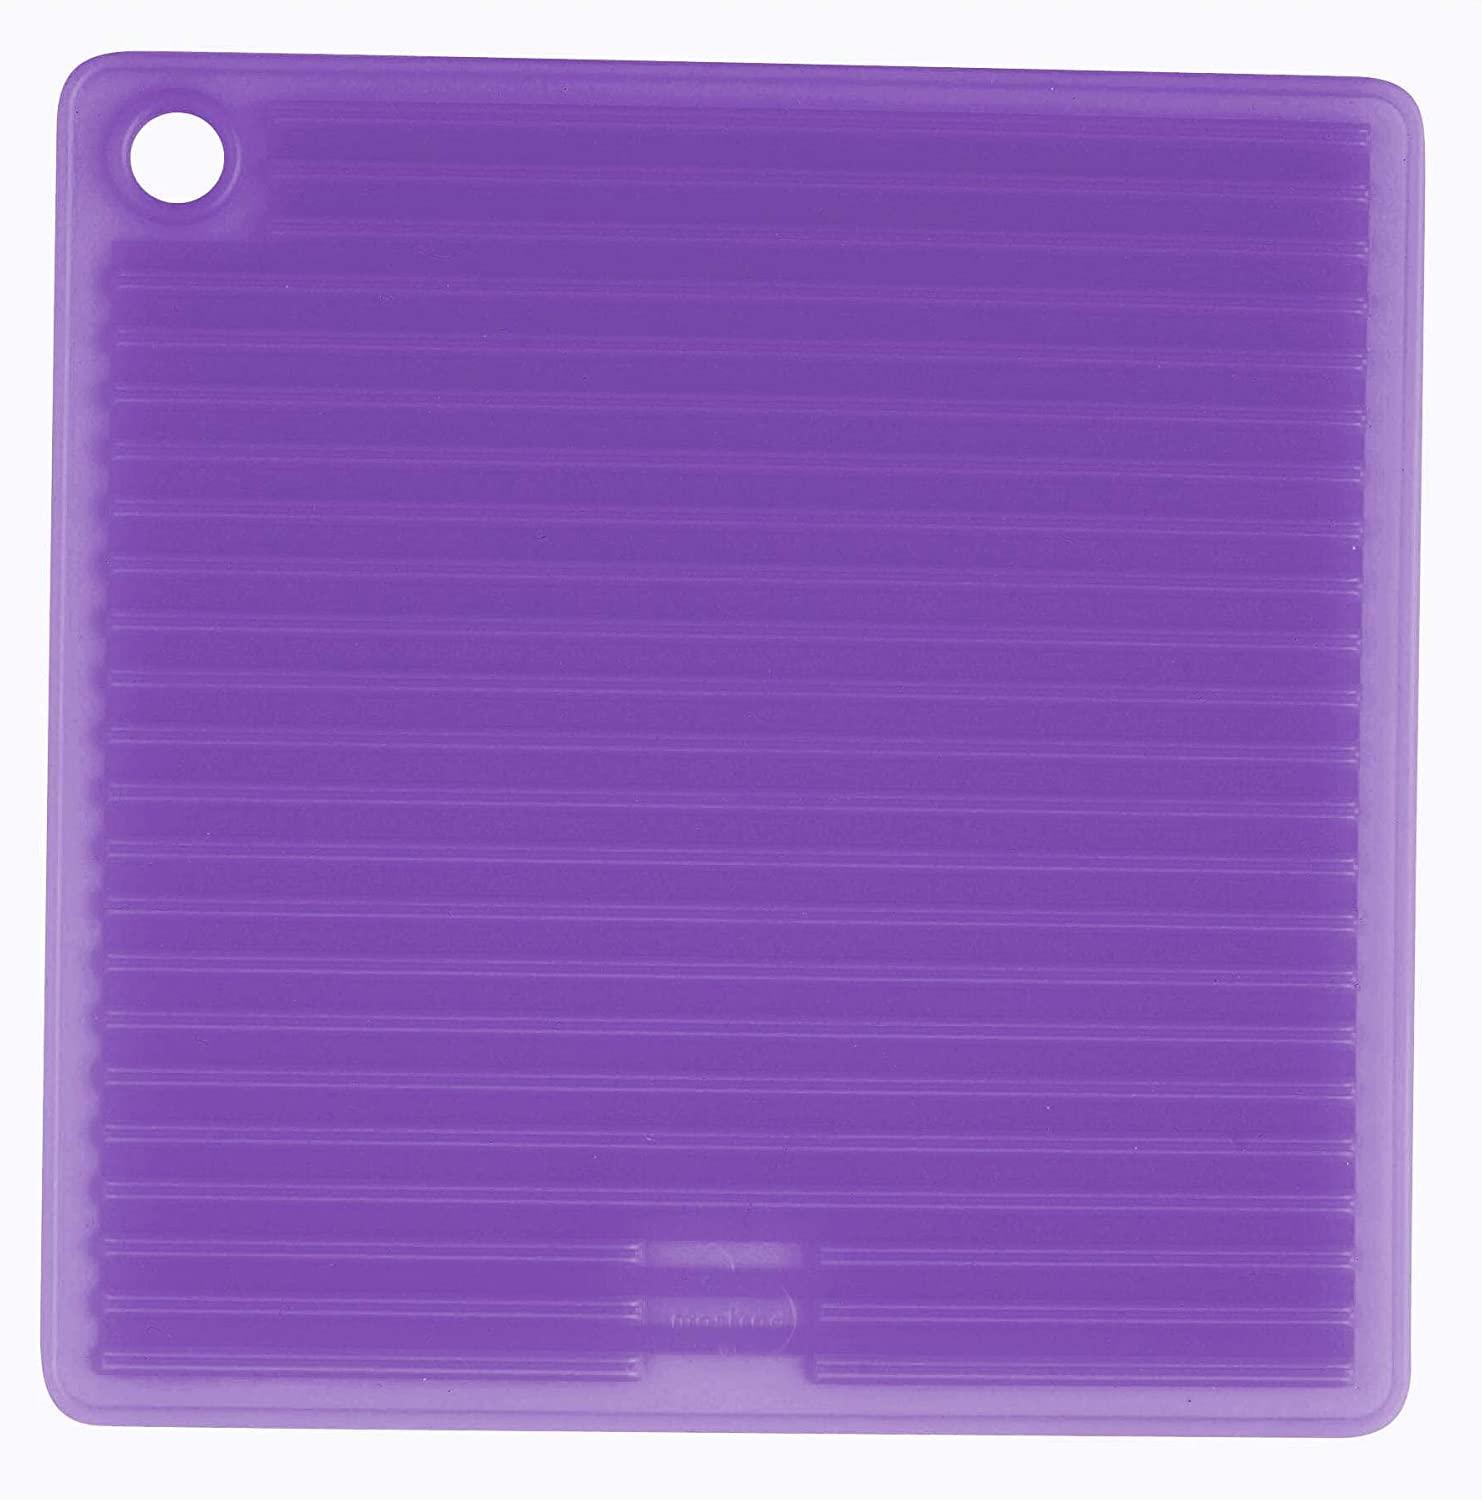 Mastrad Silicone Pot Holder - High Heat Resistant Trivet is Dishwasher Safe and Featured Double-Sided Non-Slip Ridges for Ultimate Gripability (Purple)